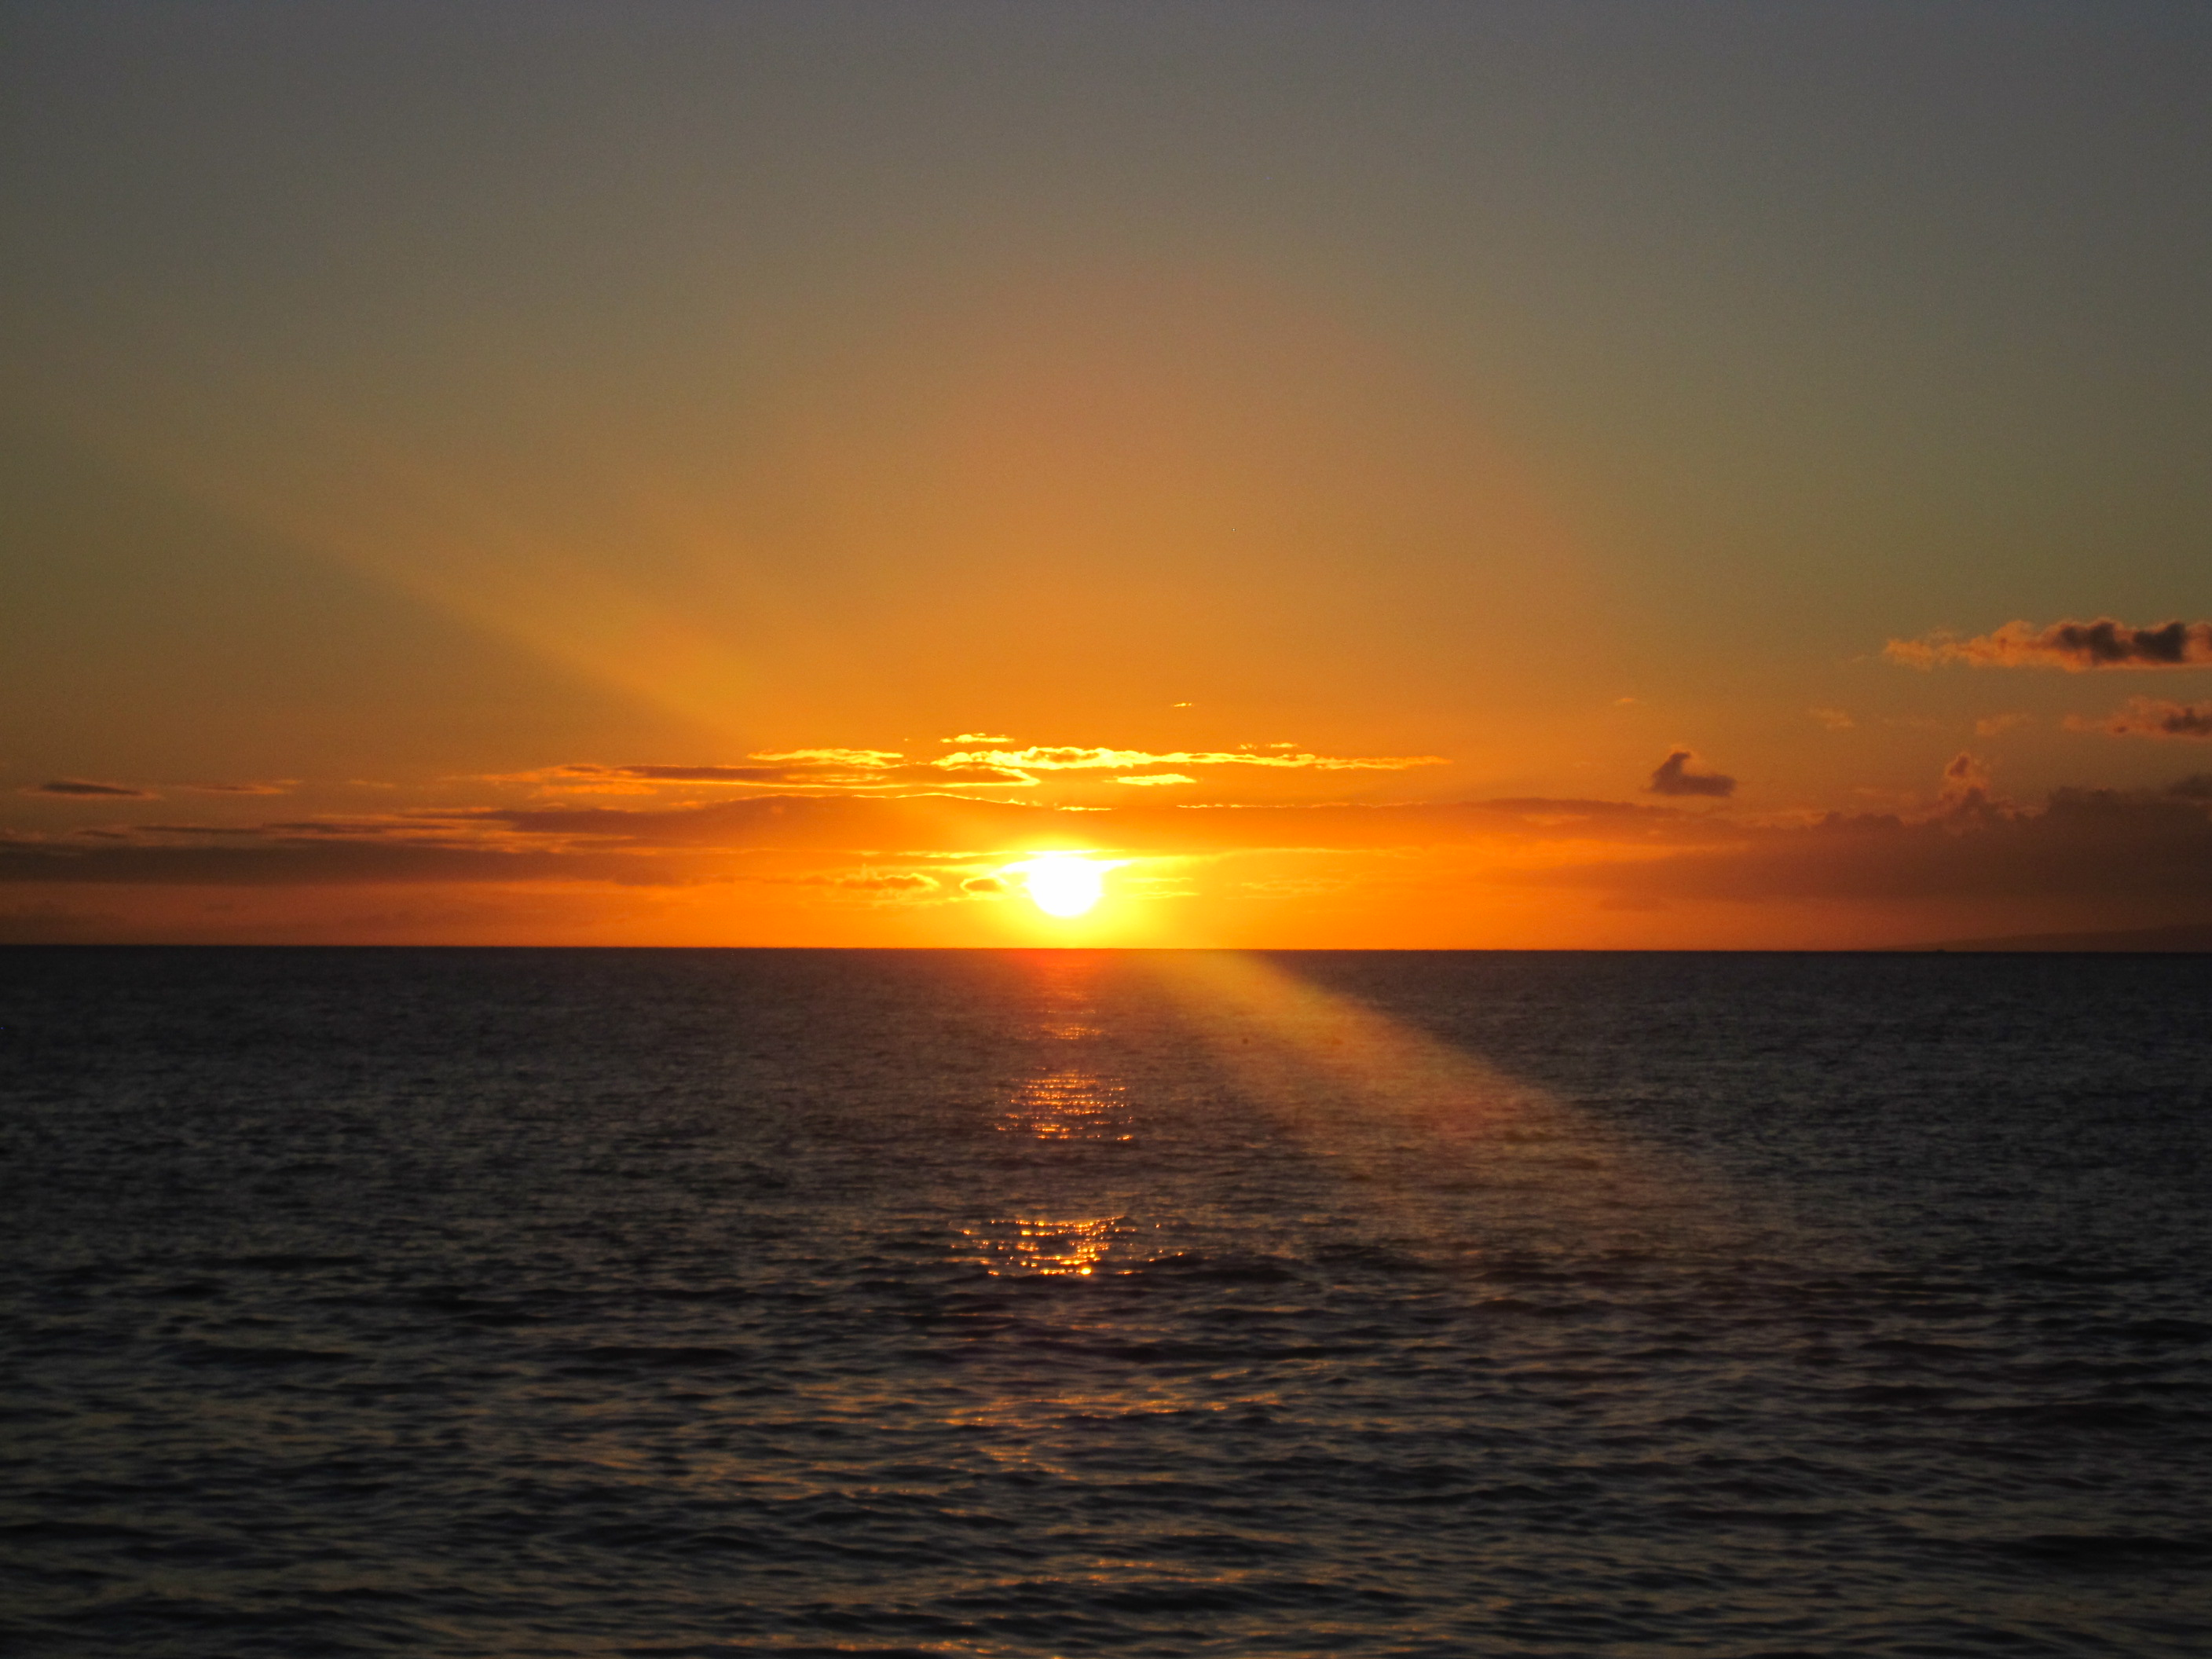 Sunset-Hawaii-8-18-2010-9-52-34-PM